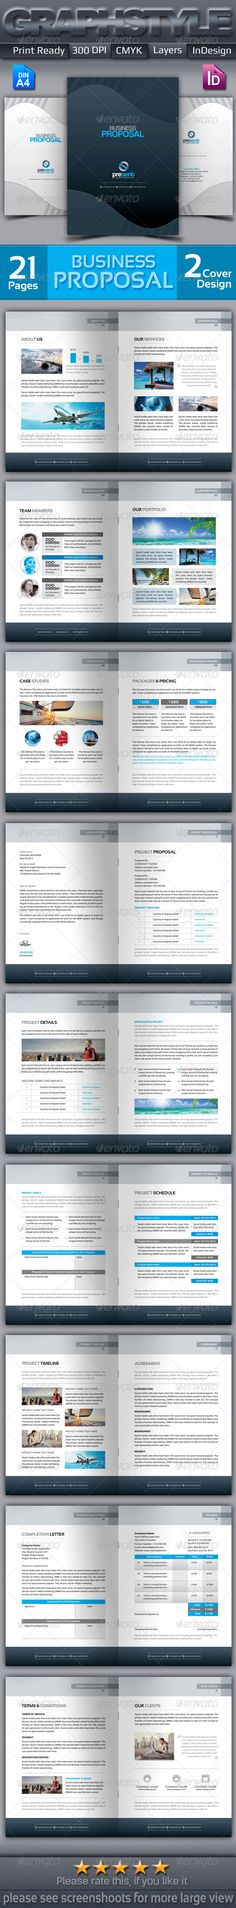 Business Proposal Template w\/ Resume \ Invoice 60+ Pages Adobe - business proposals